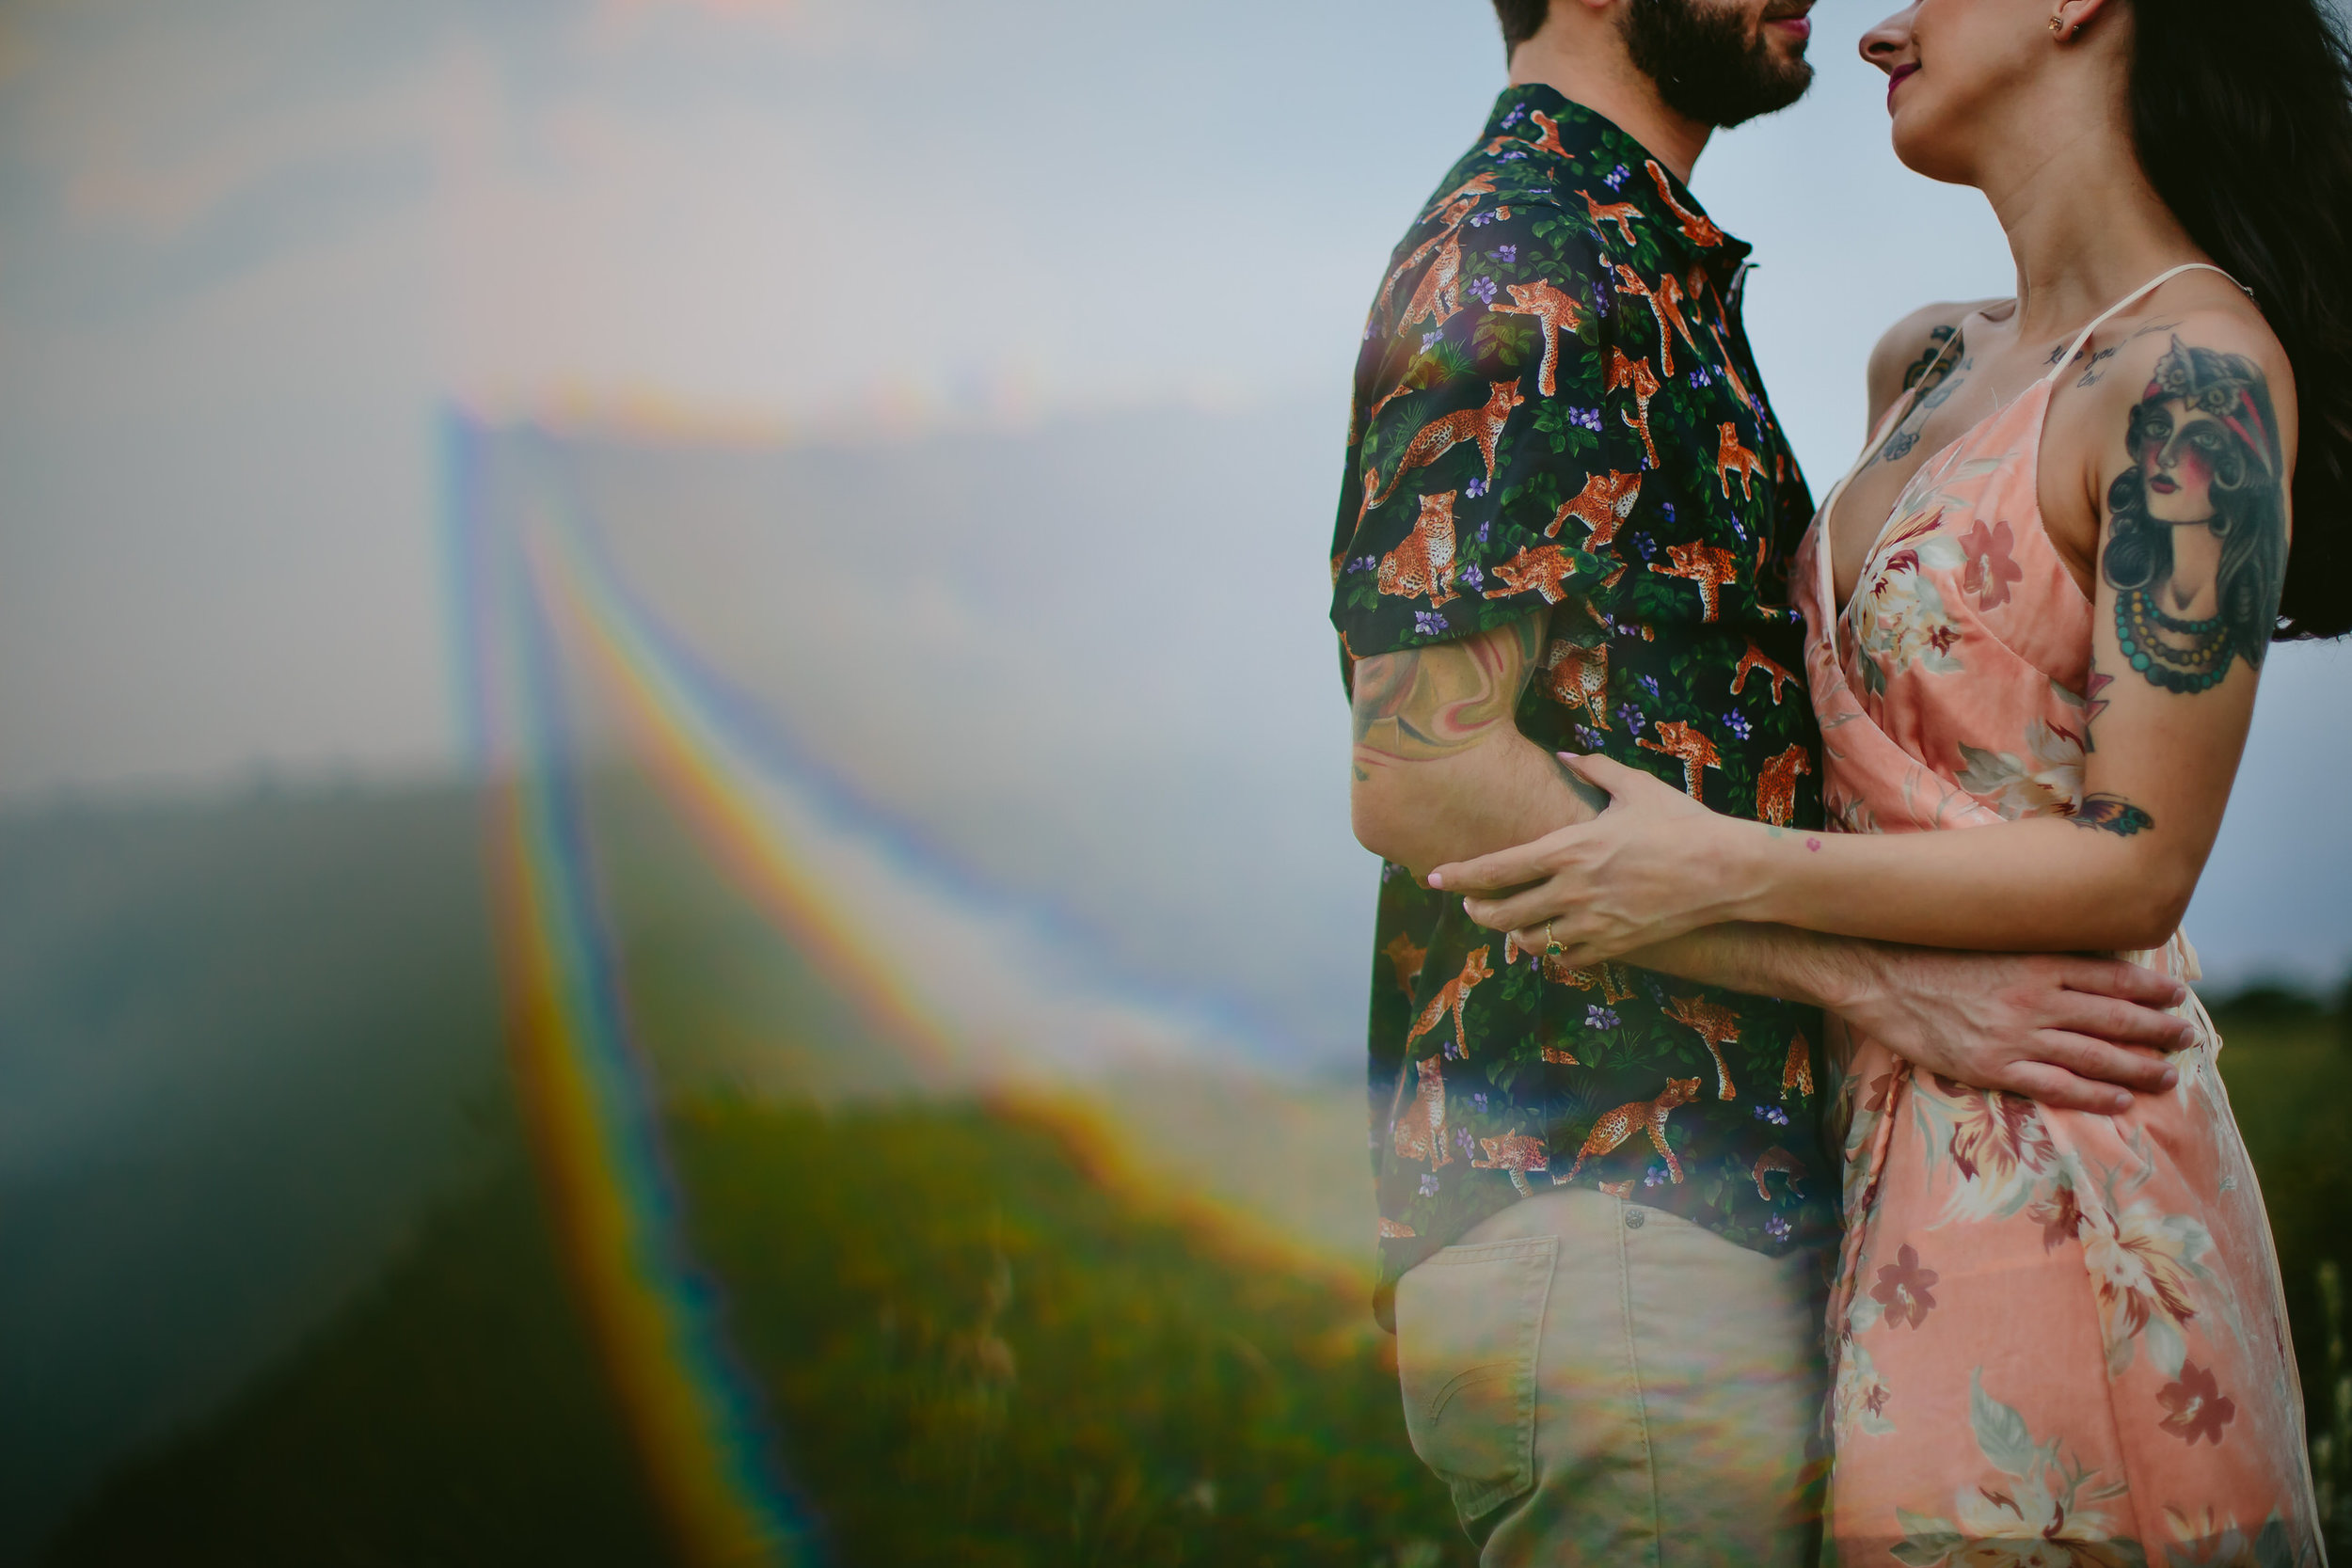 tattoo-couple-intimate-wedding-photographer-engagement-portraits-tiny-house-photo-miami.jpg